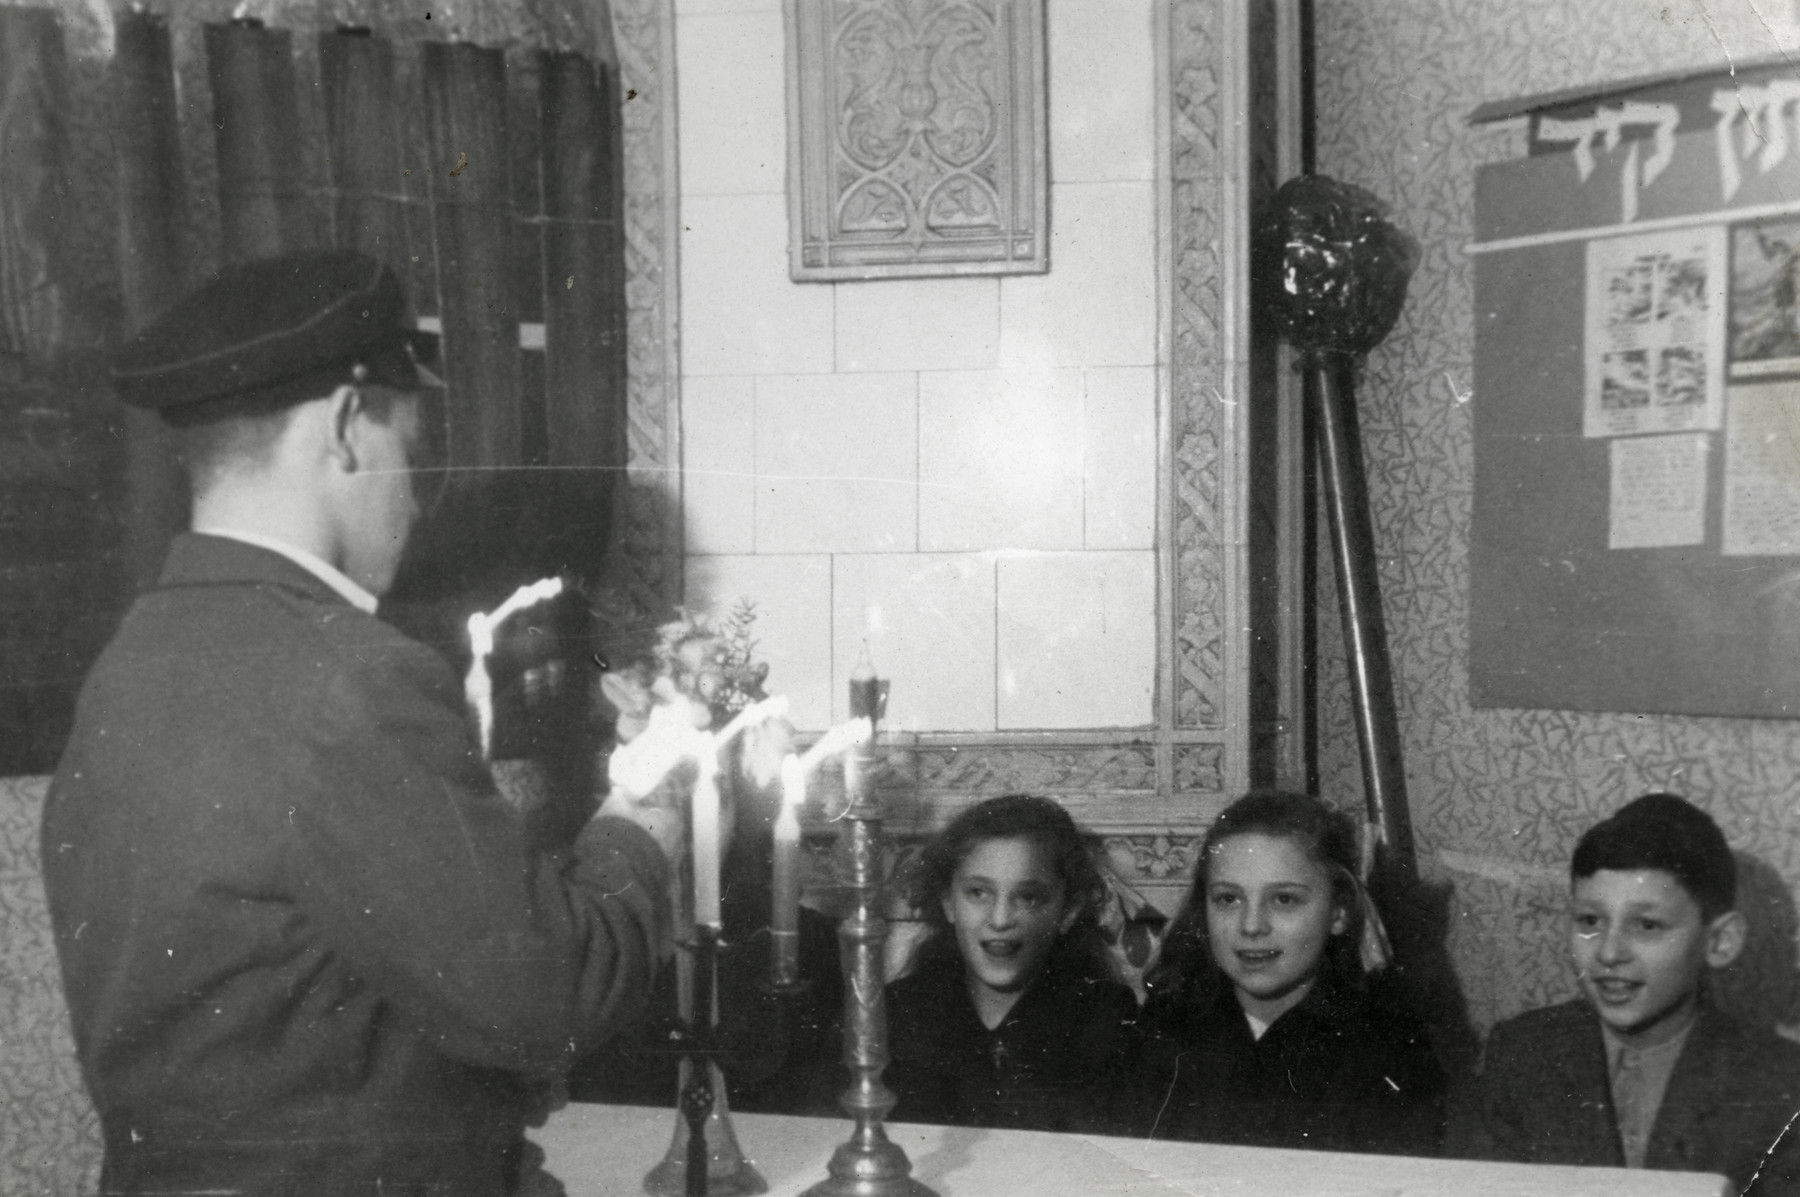 An older child lights candles at a celebration at the Lodz Coordinatsia orphanage.